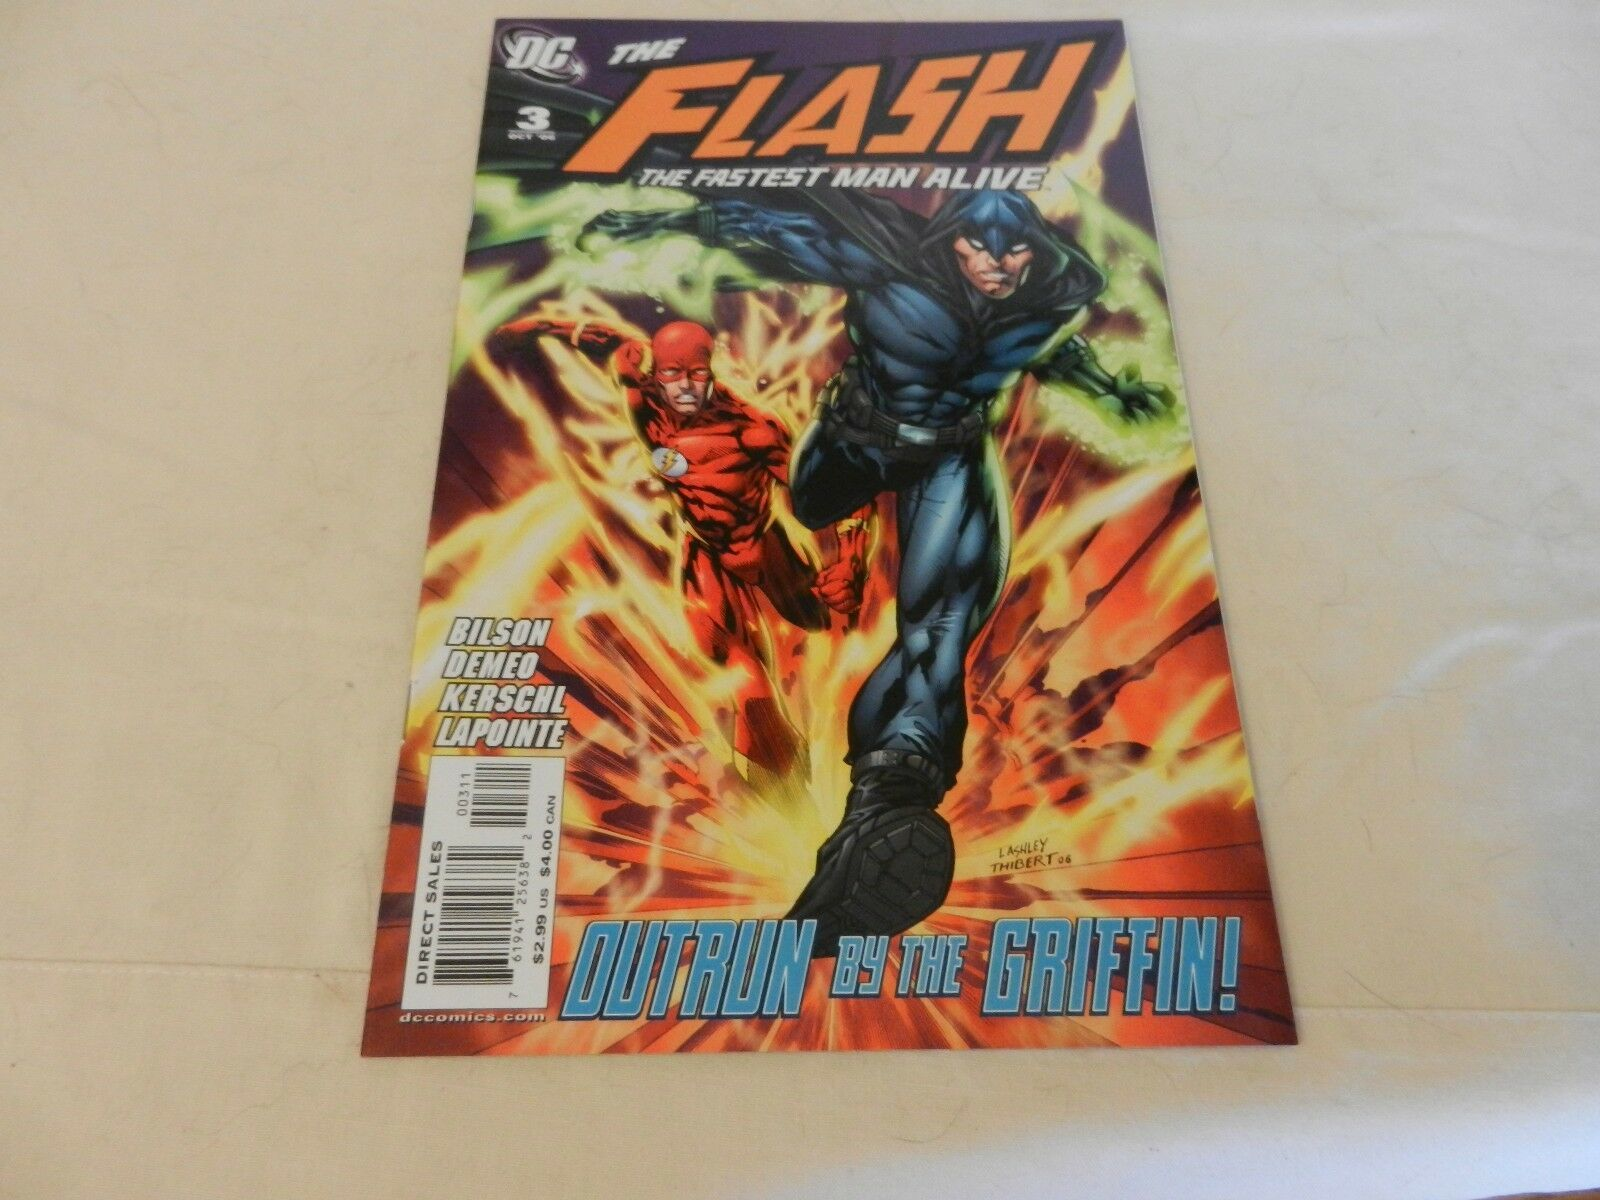 The Flash The Fastest Man Alive Outrun by the Griffin! DC Comics #3 October 2006